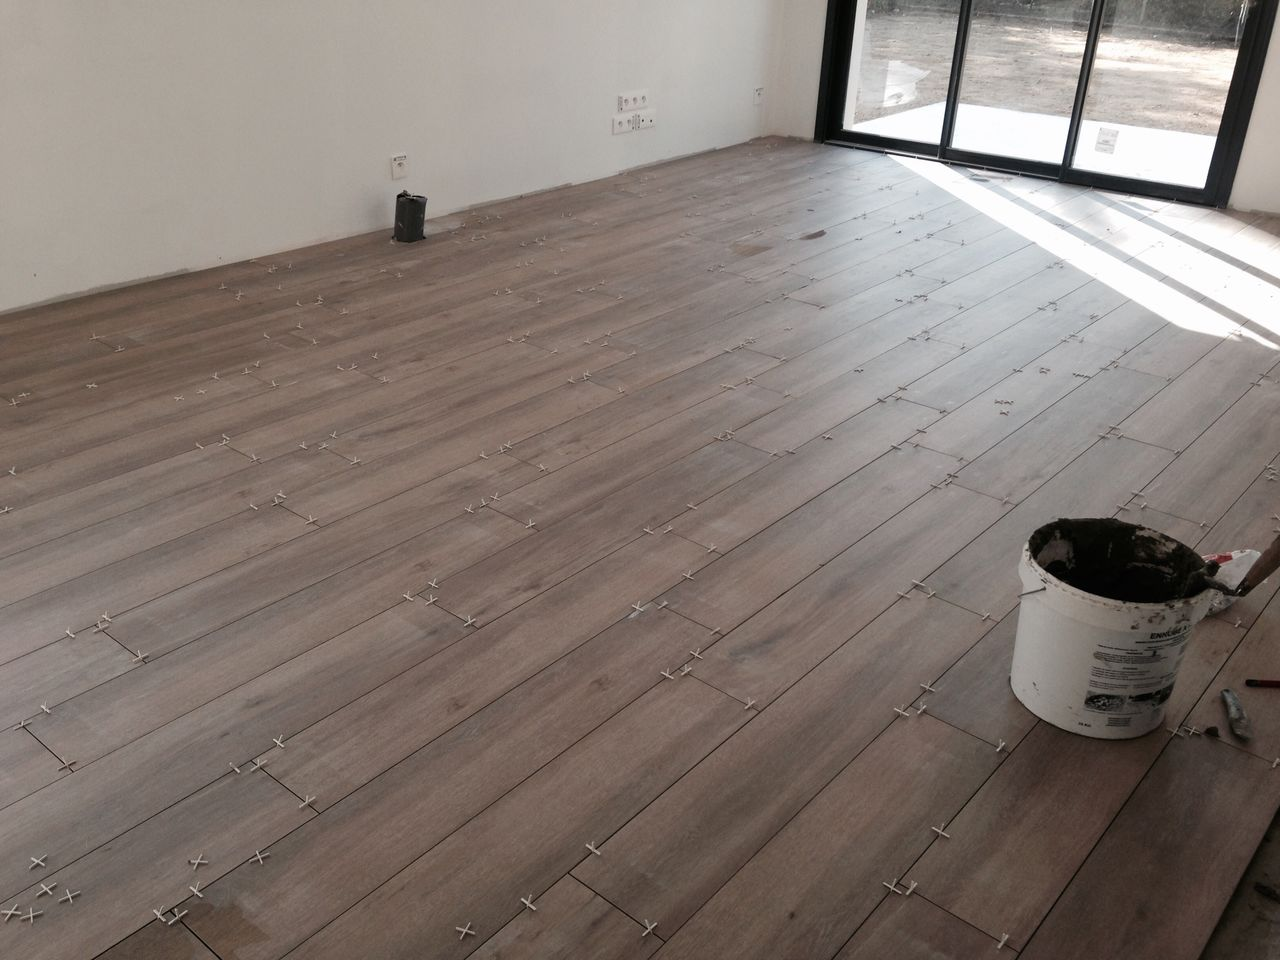 Carrelage imitation parquet gris for Carrelage imitation parquet